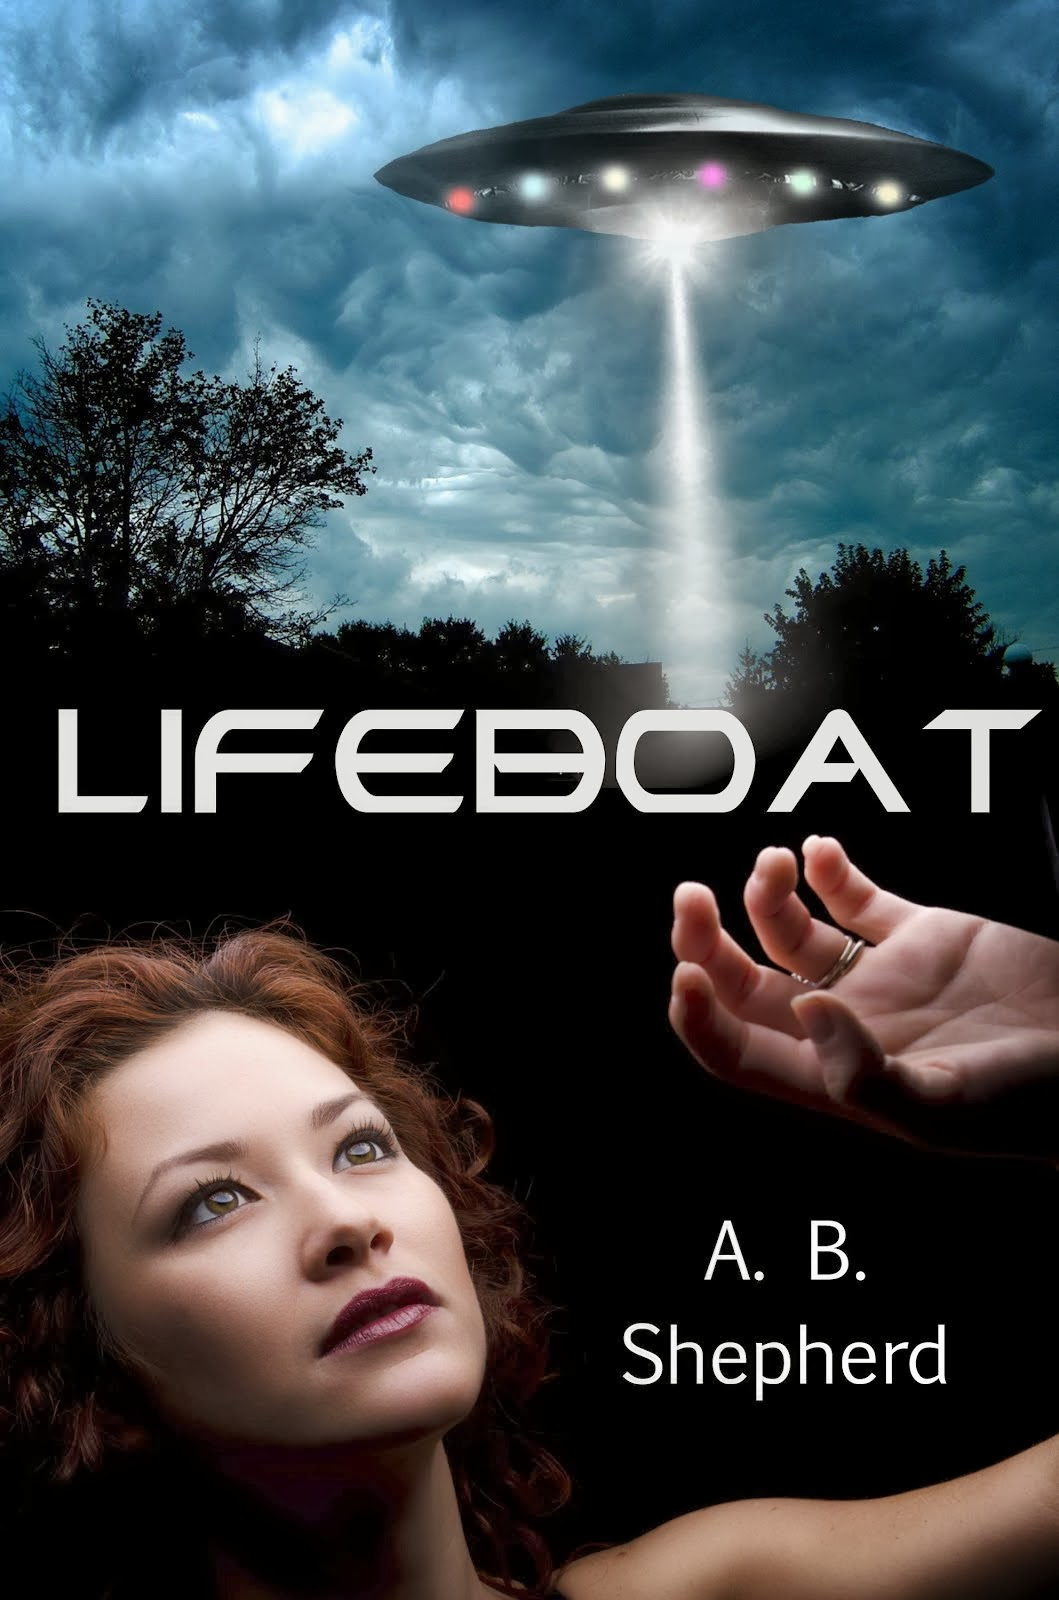 Want to escape reality for a little while? Climb aboard my Lifeboat. It will take you away.